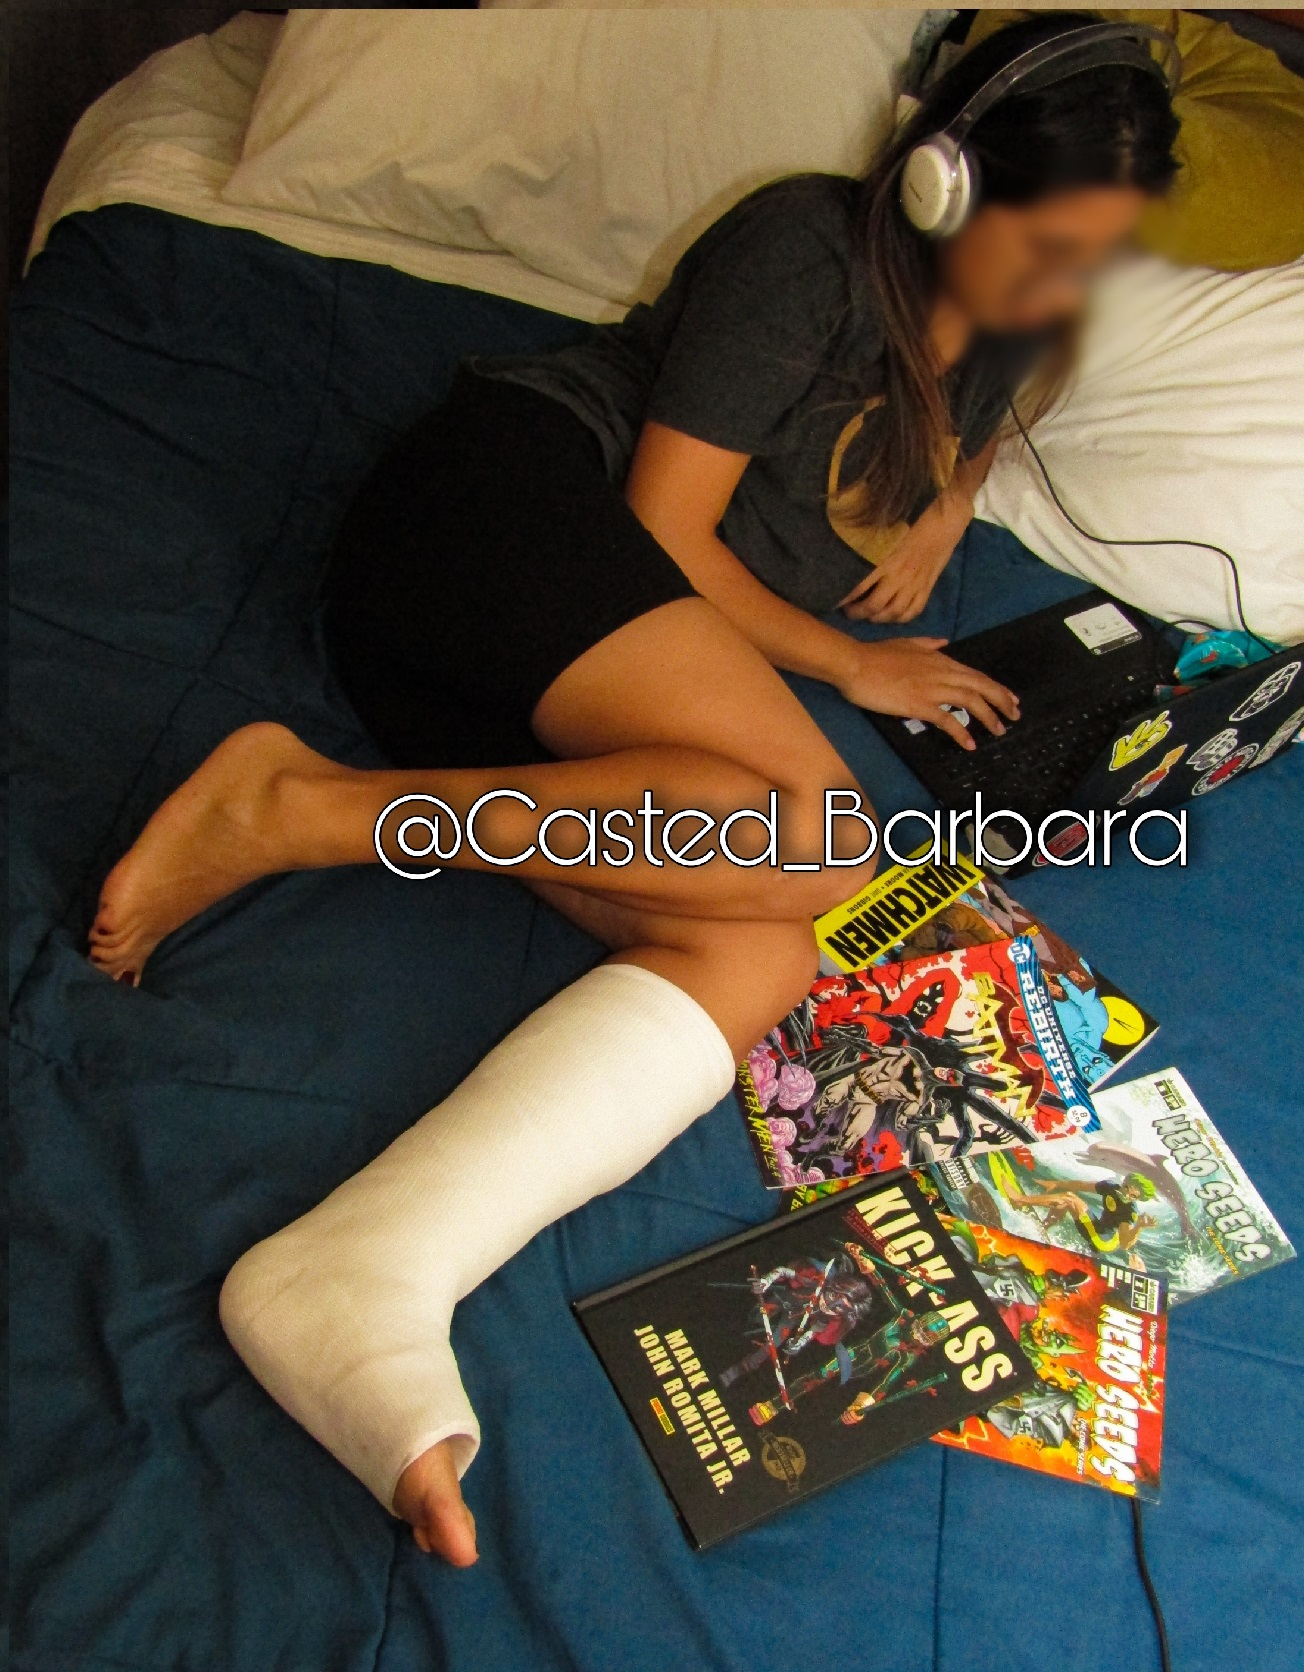 I can't do much with my casted leg so i stayed in my bed reading and enjoing my comic books.